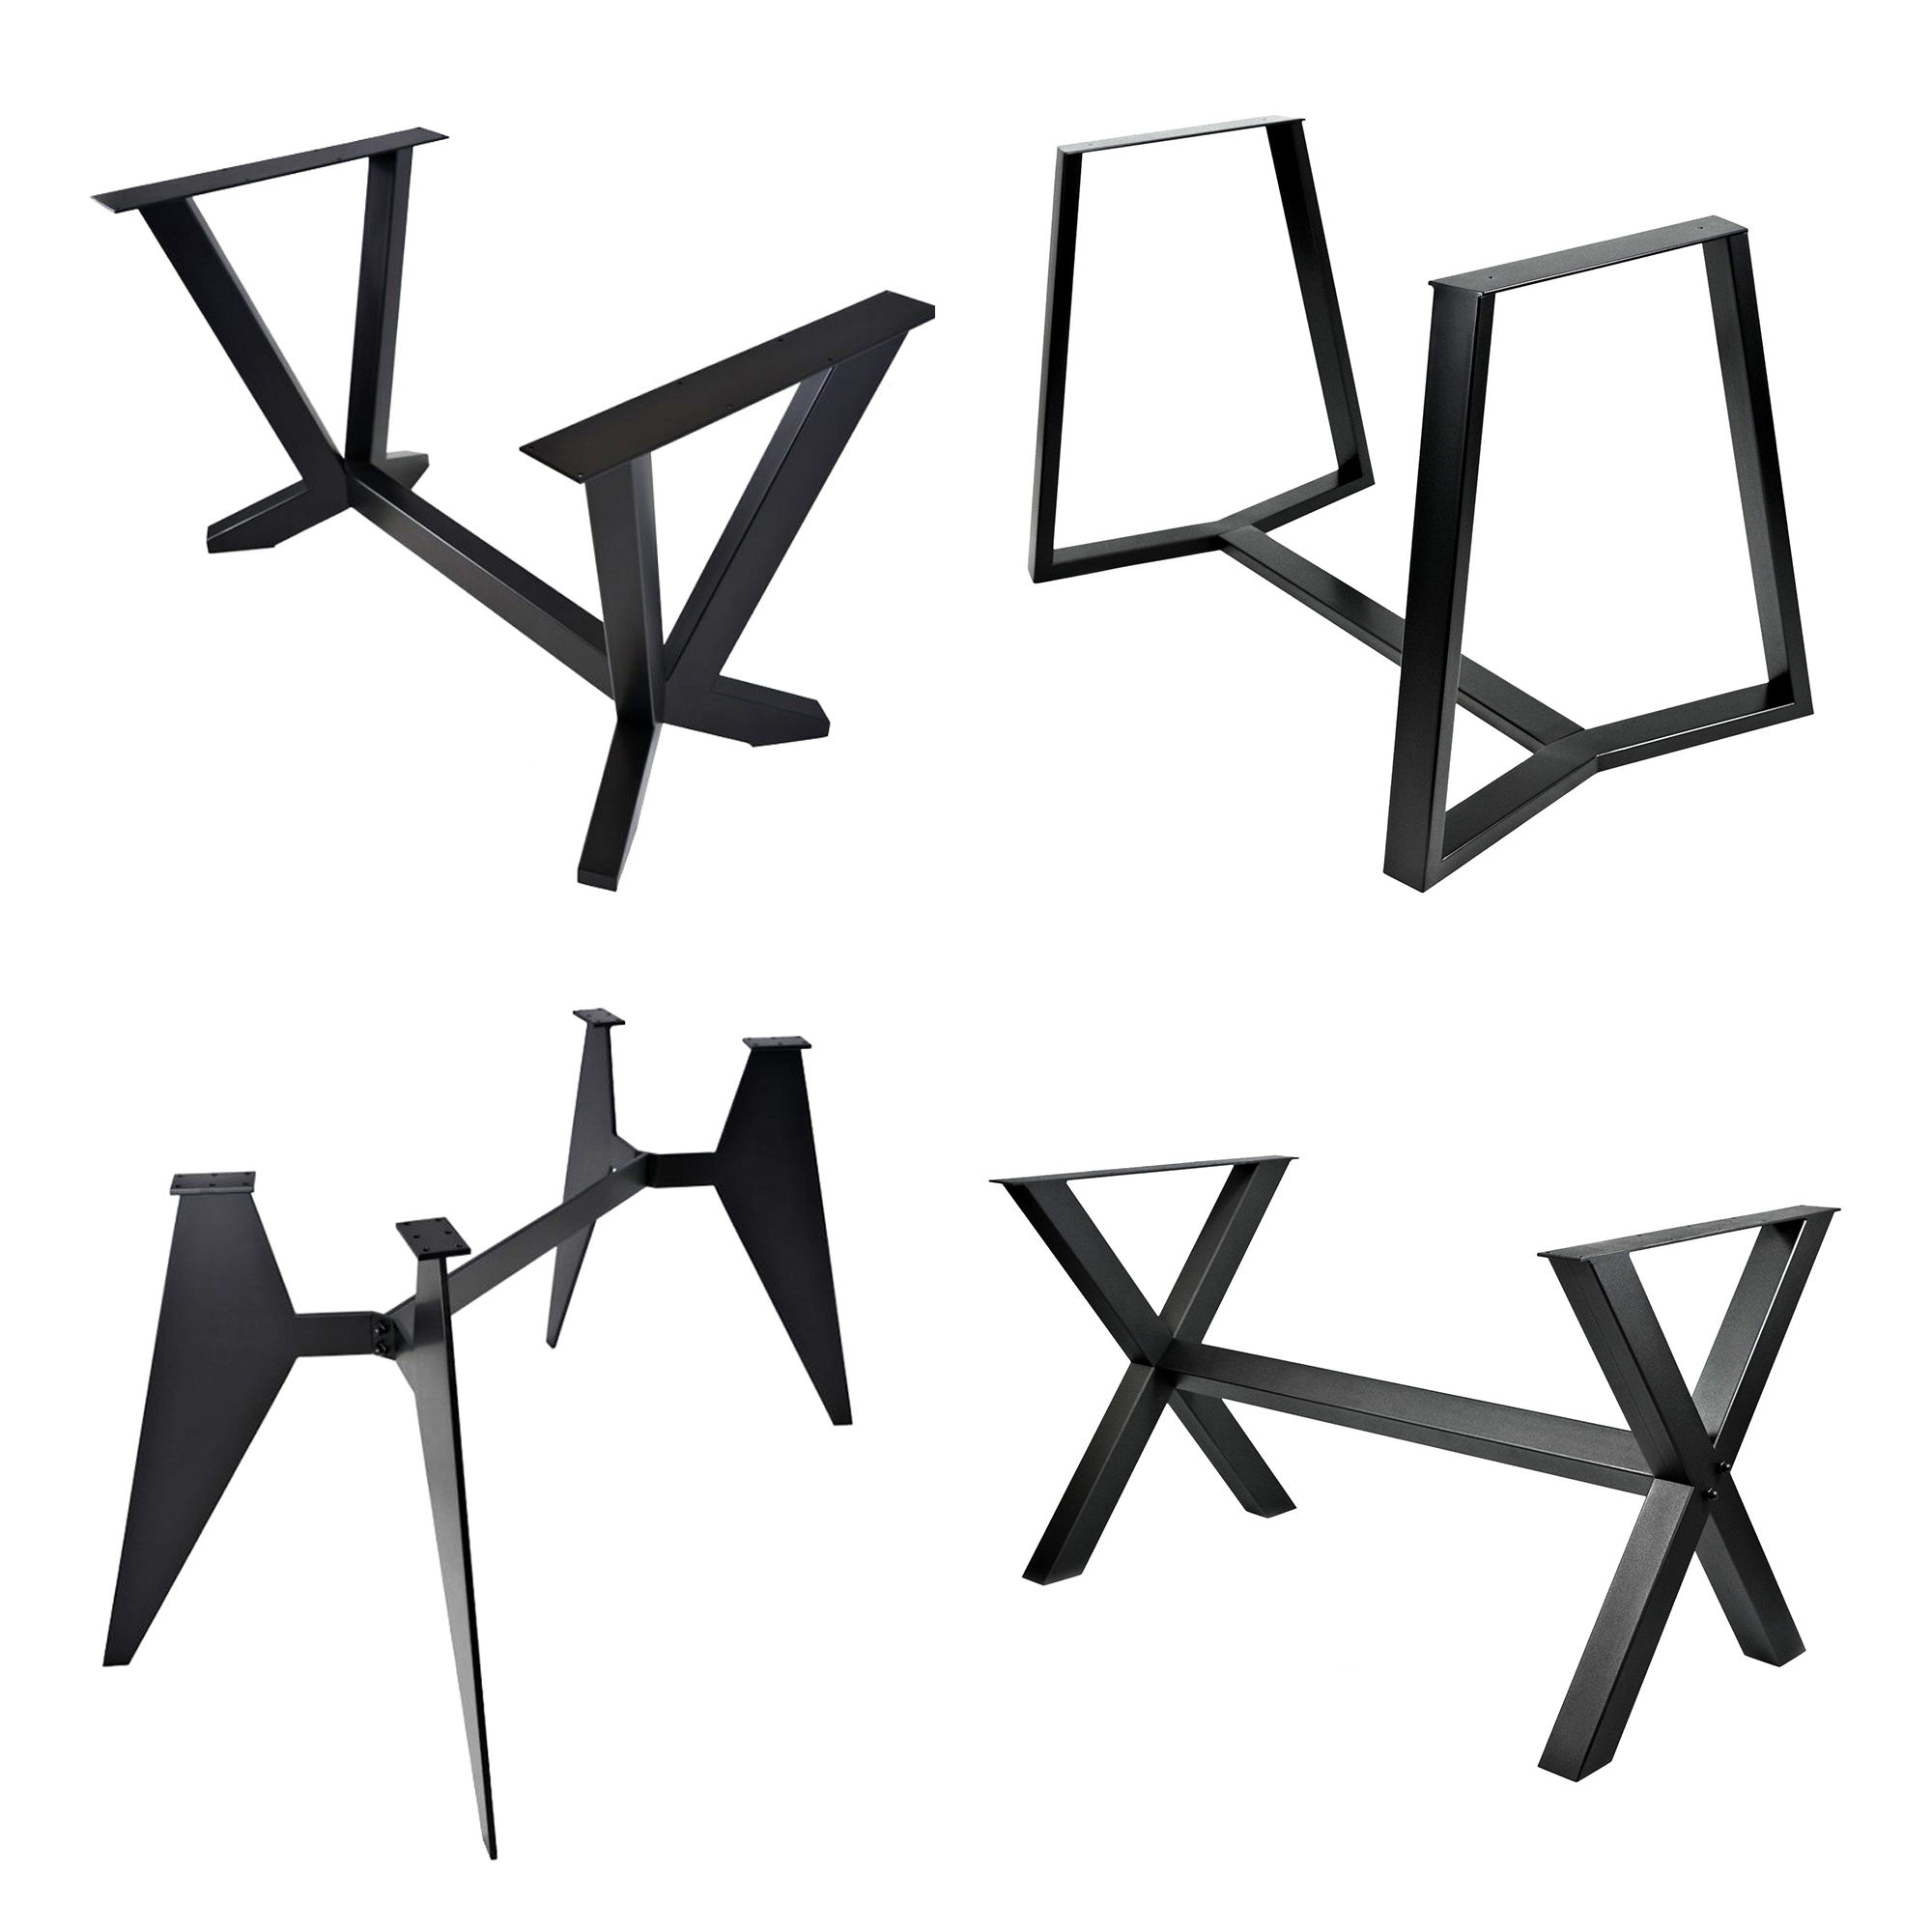 Modern metal Slab Table Frame, Y-Shaped Table Legs, Wood Slab Support Feet Custom-made